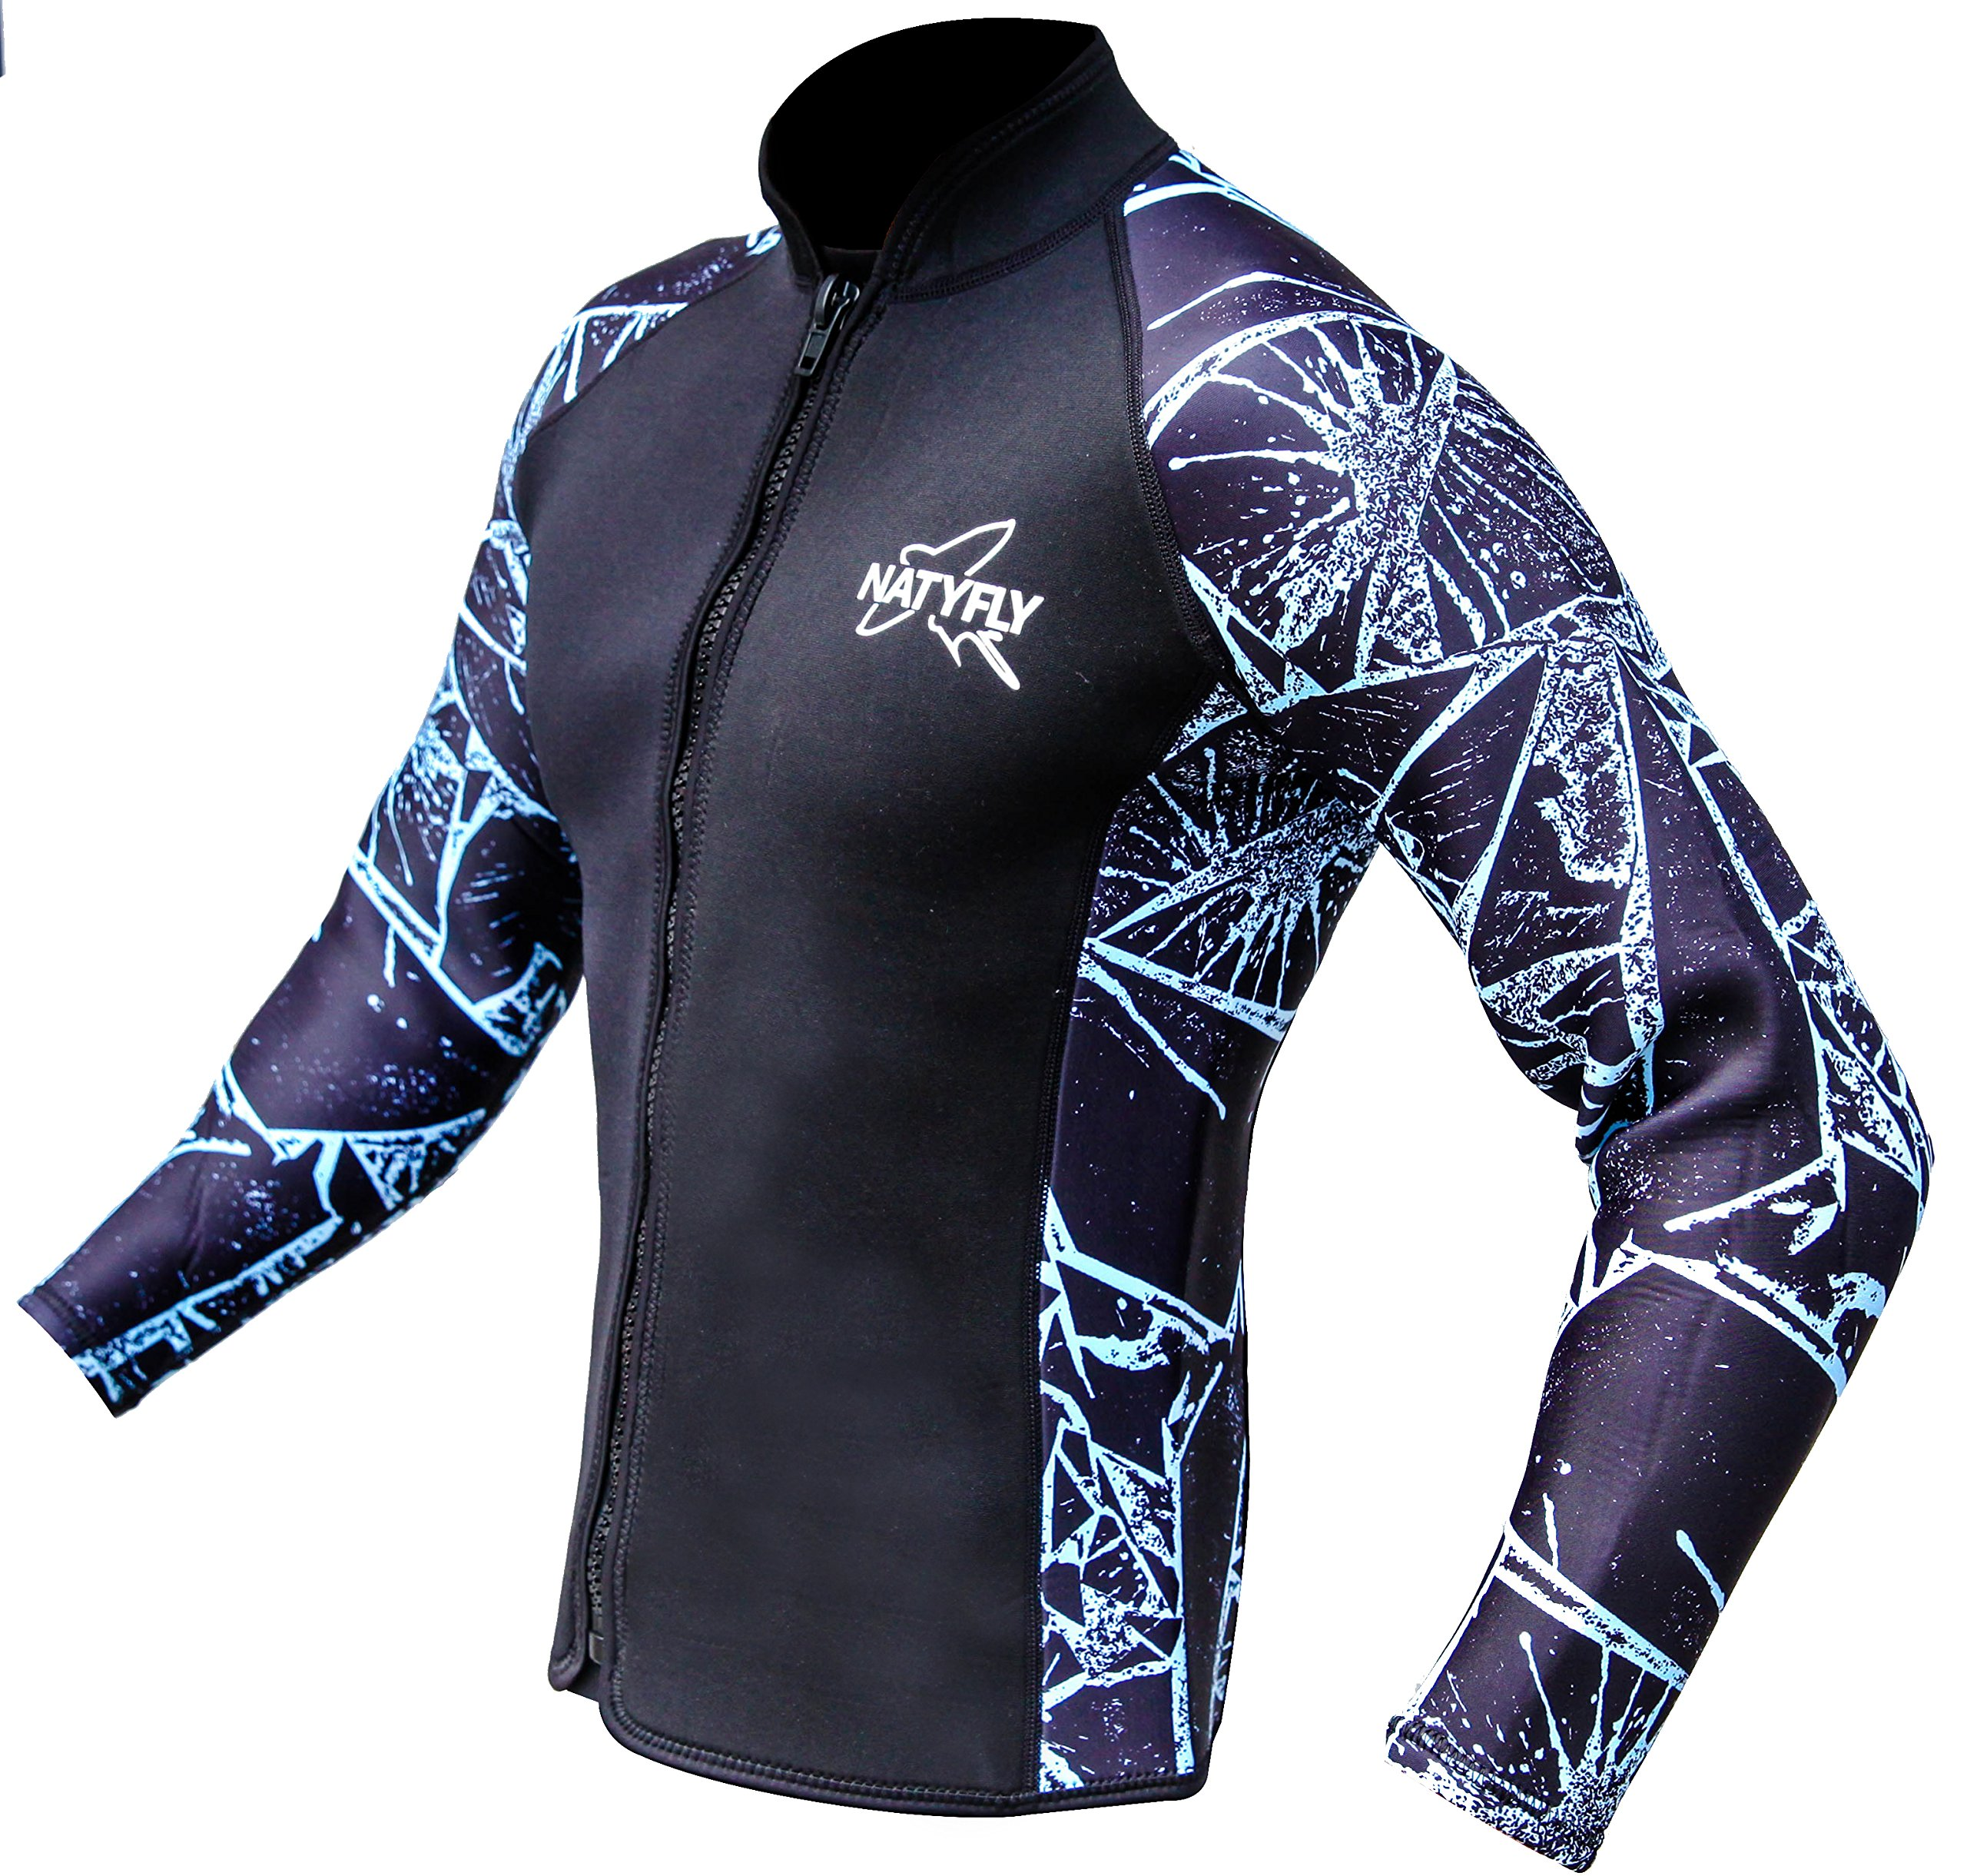 NATYFLY Wetsuit Jacket Long Sleeve Neoprene Wetsuits Top for Men/Women (Blue-Neoprene, 3X-Large) by NATYFLY